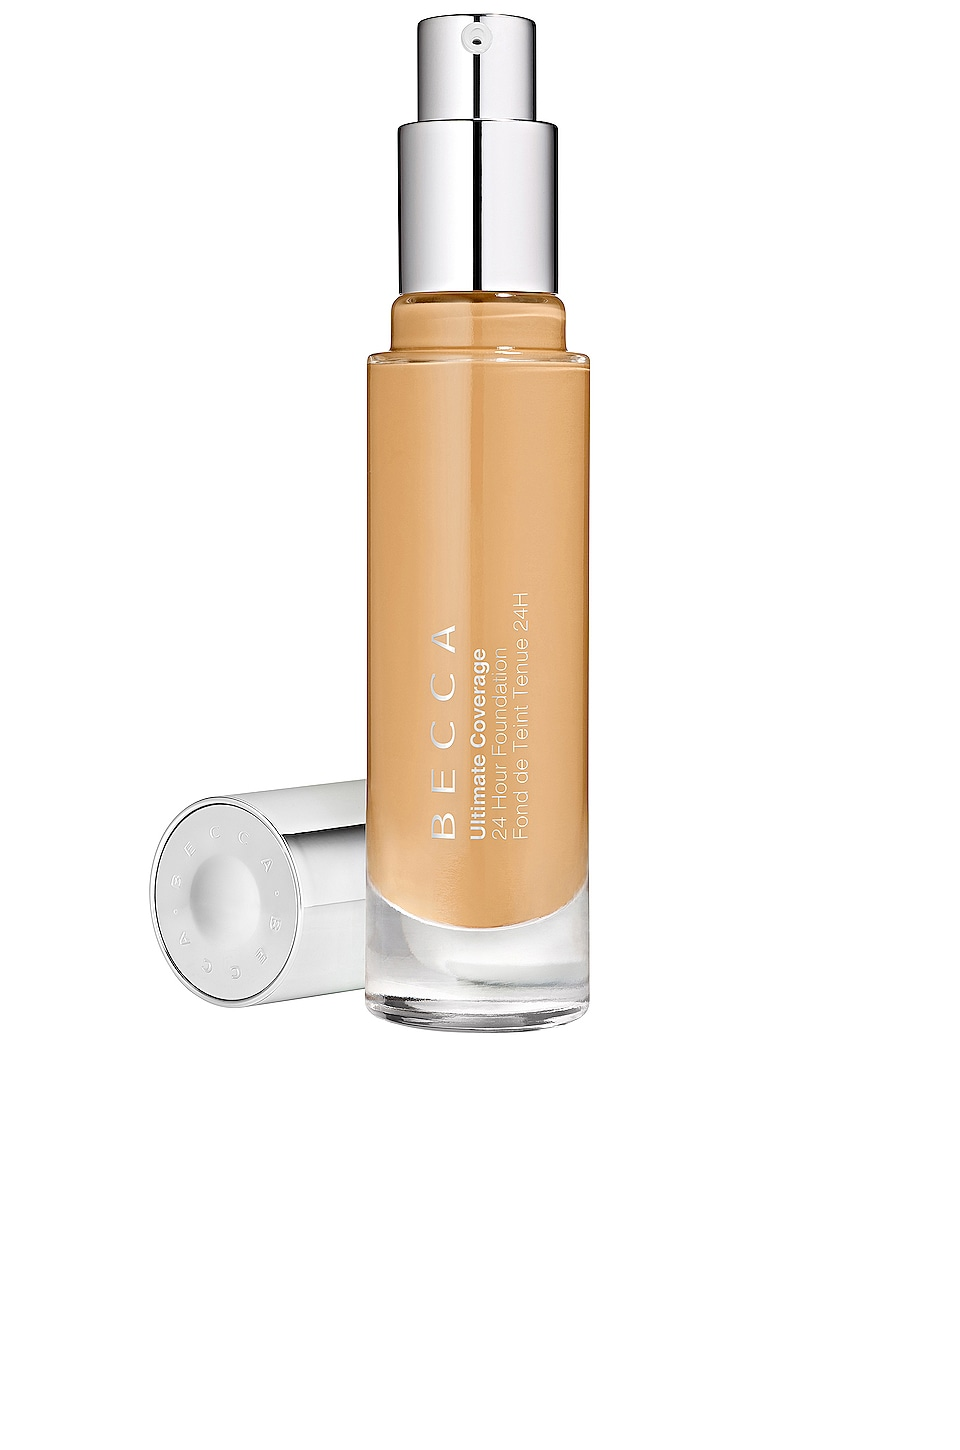 BECCA Ultimate Coverage 24 Hour Foundation in Buff